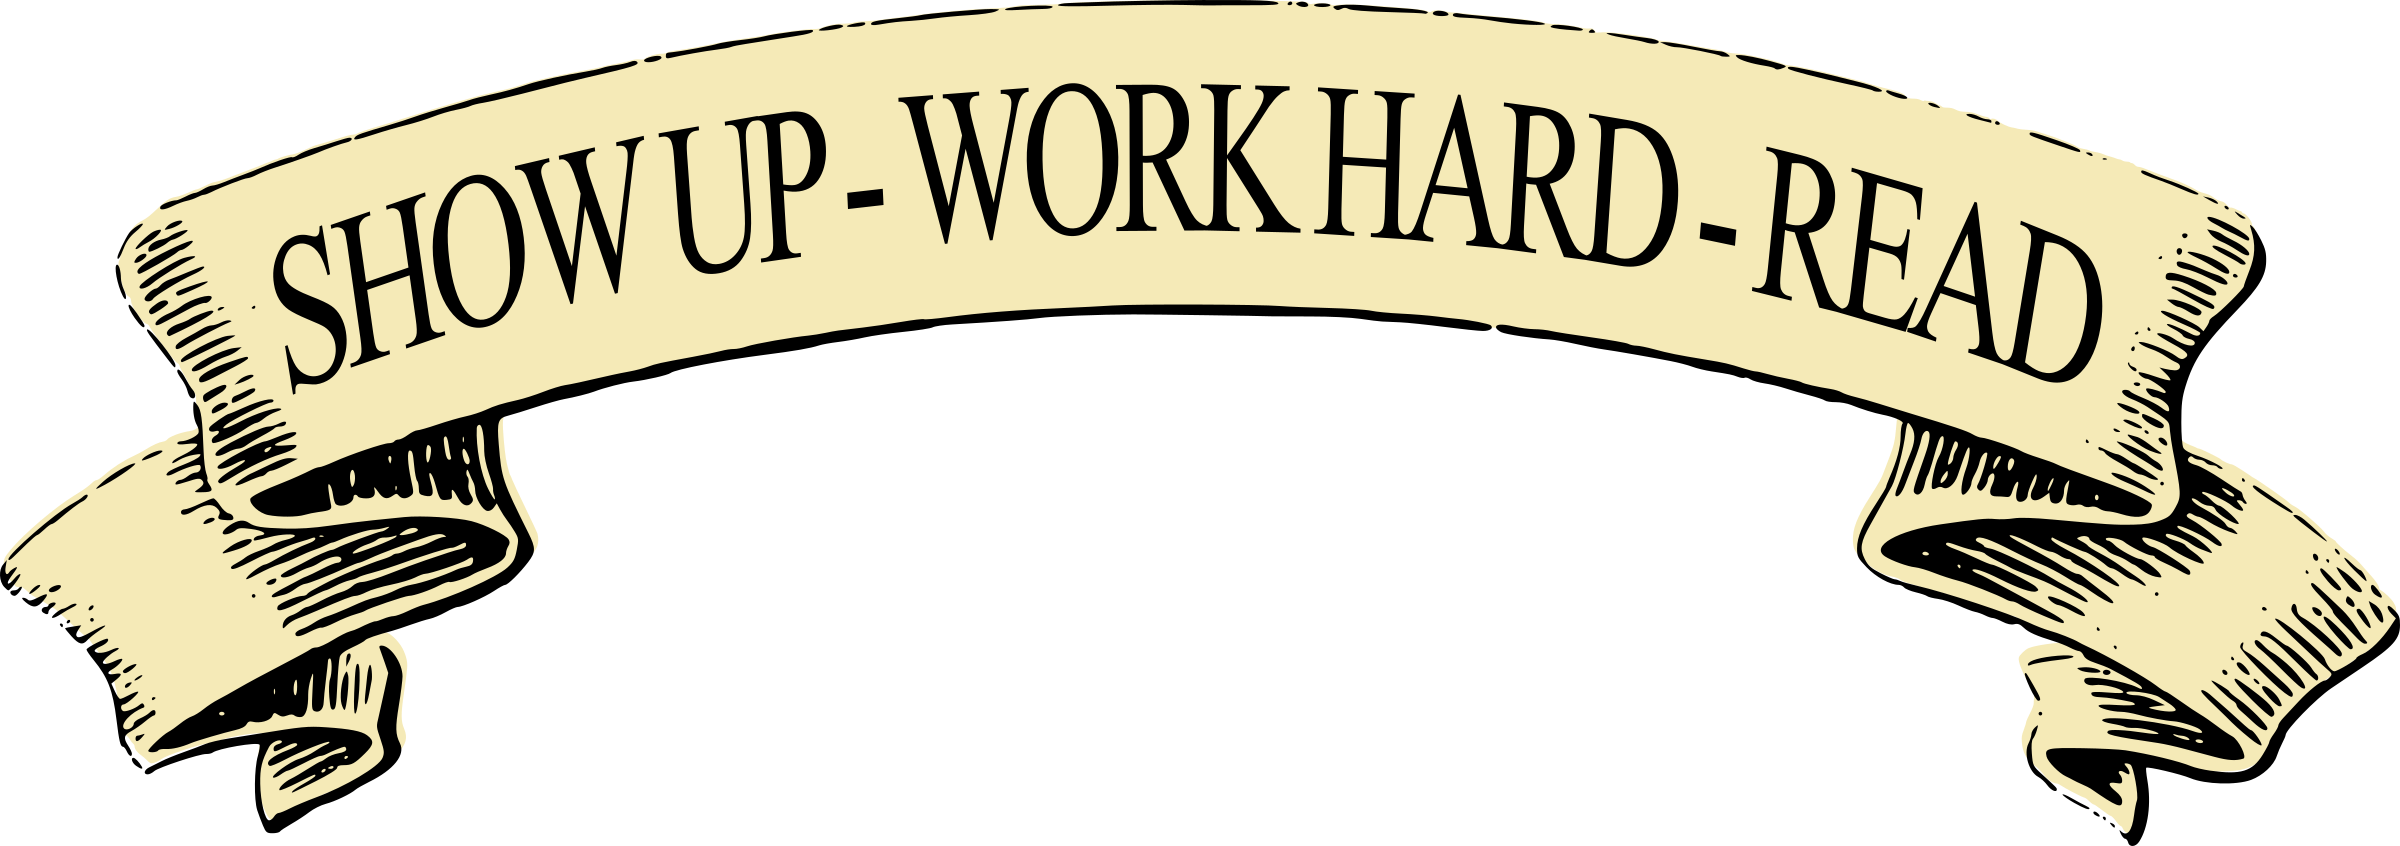 Show Up Work Hard Read Banner by ARTcombobulated